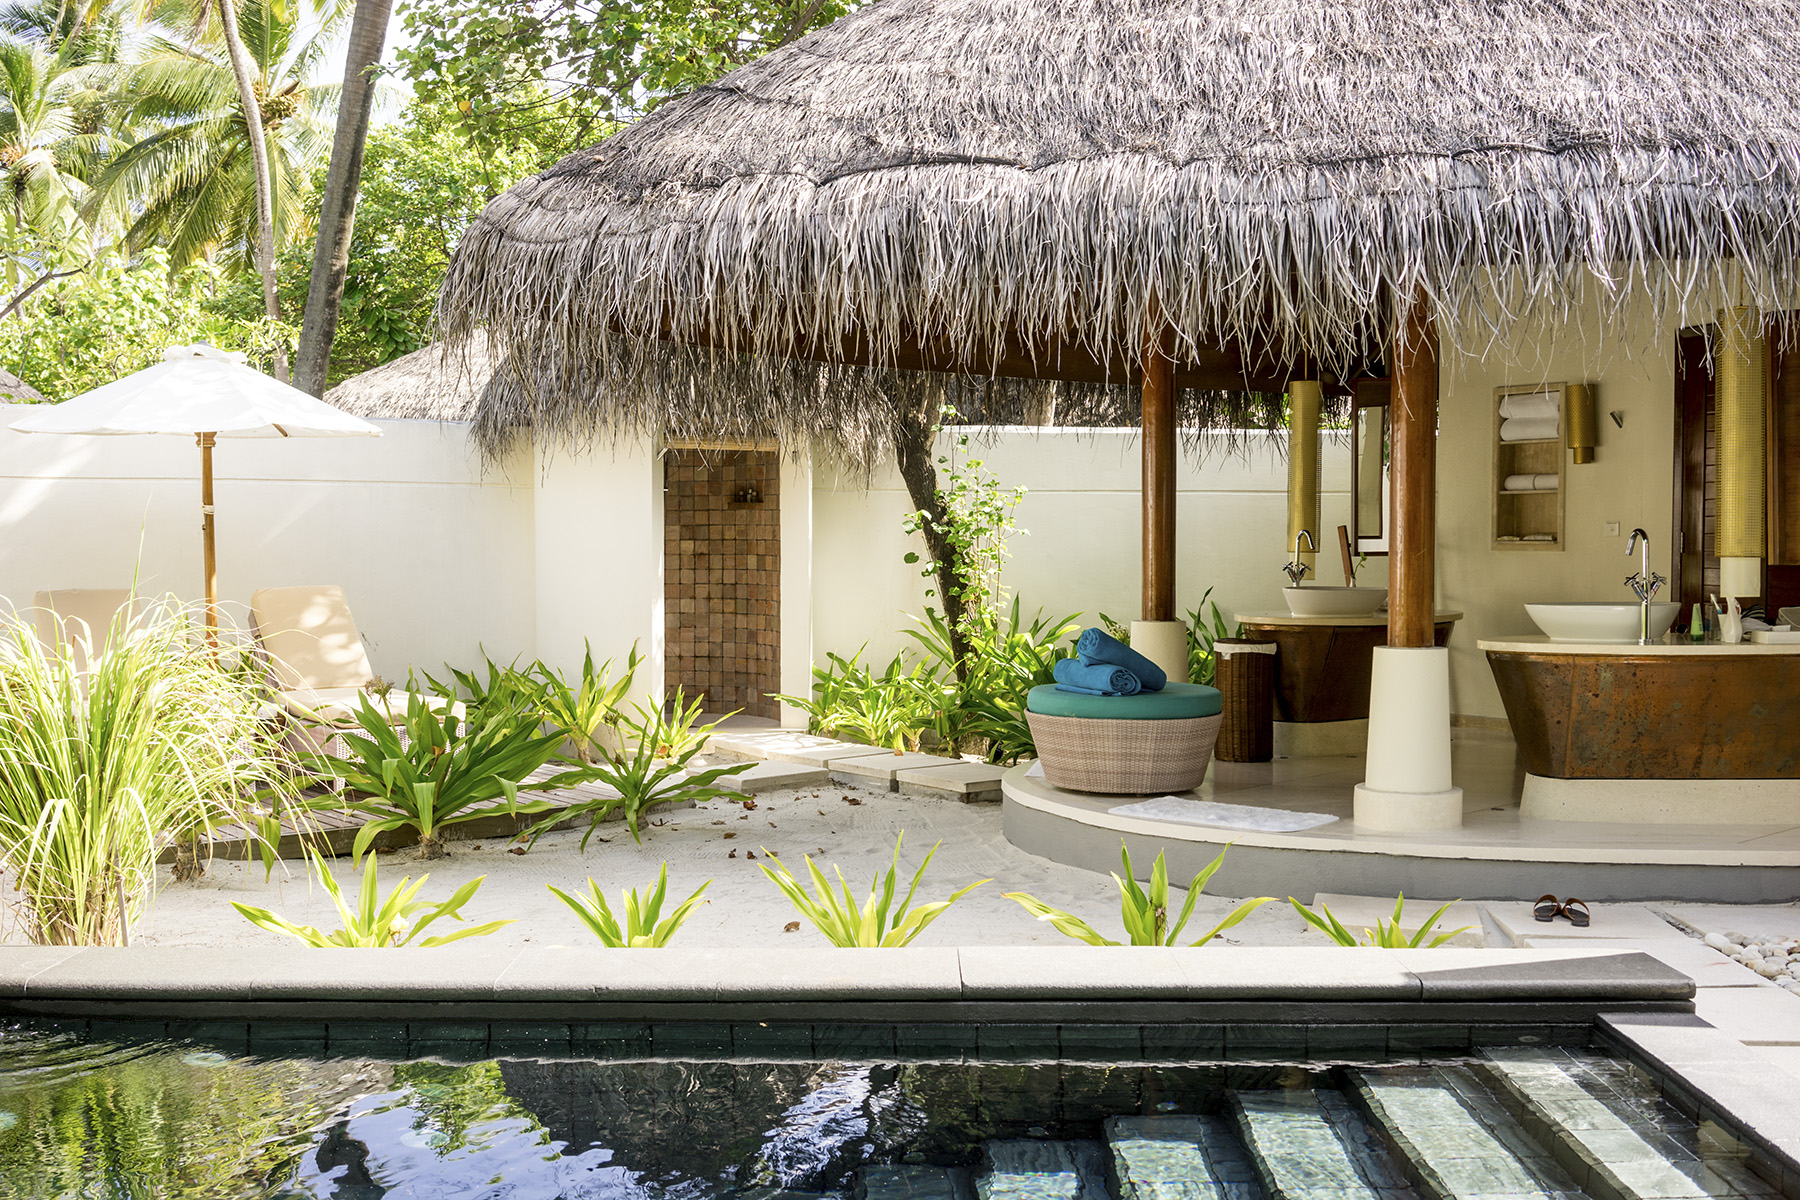 Beach villa complete with outdoor bathroom and private pool next to the bath